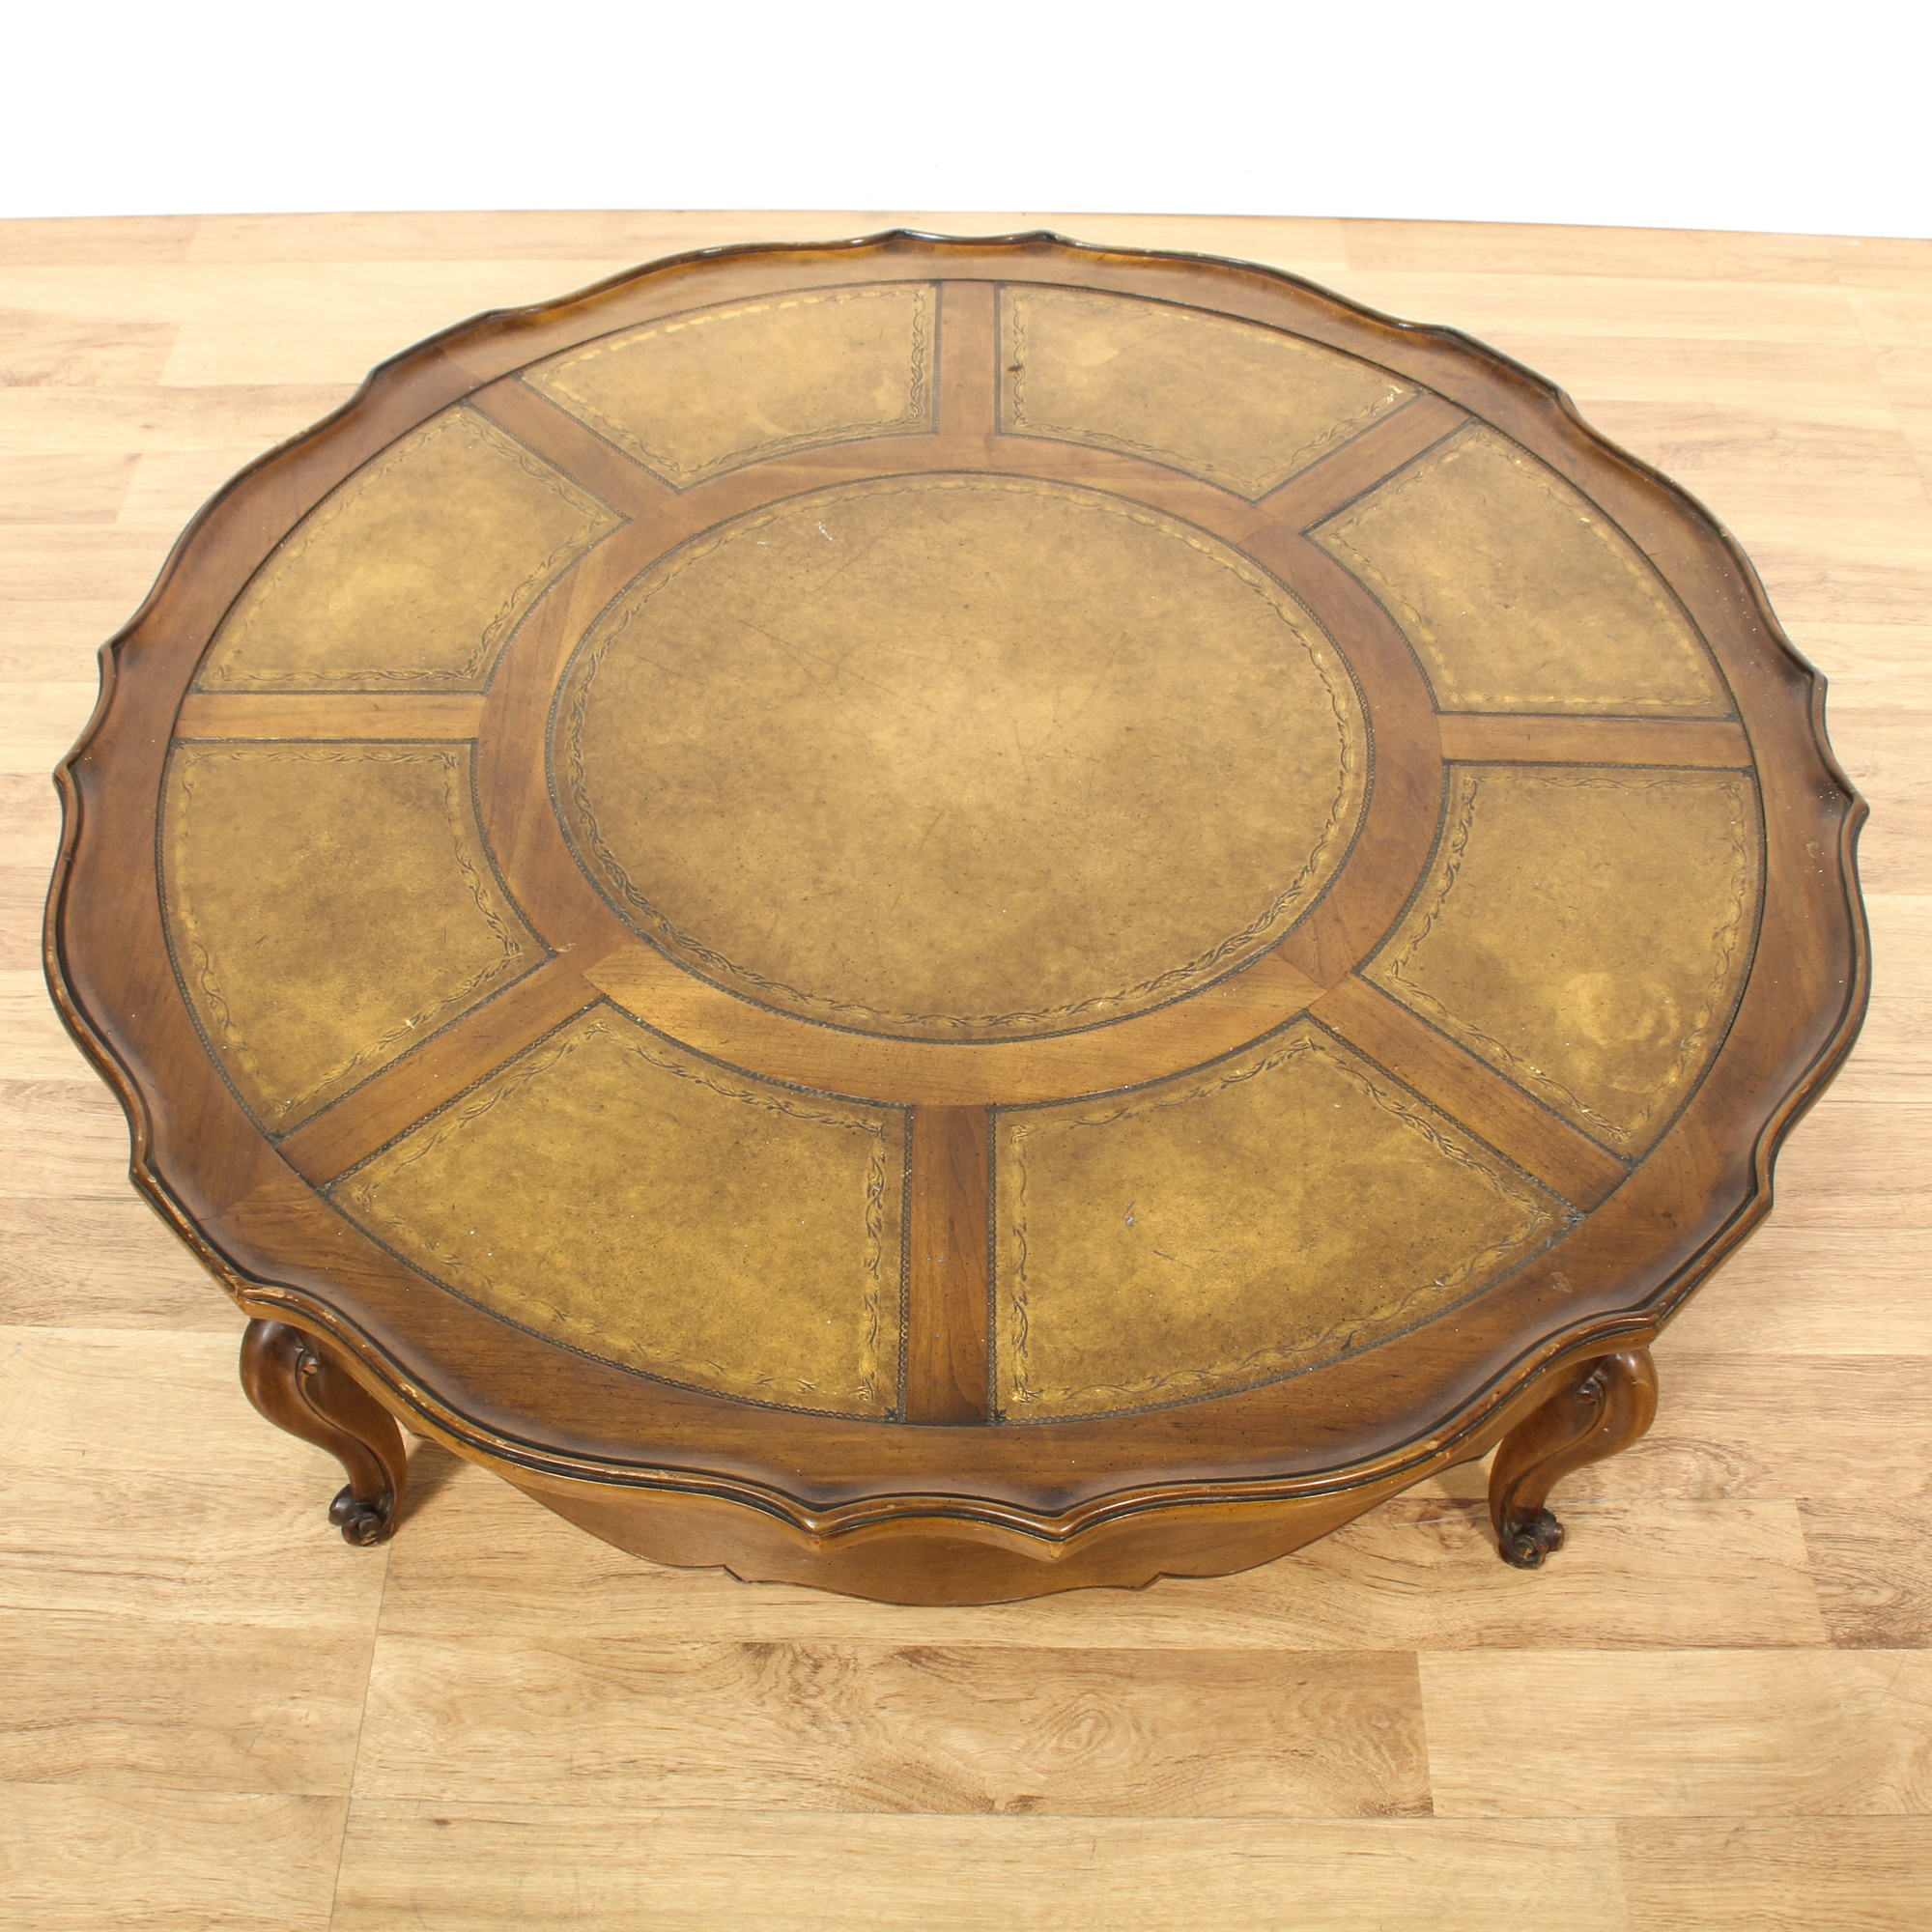 Antique Round Leather Top Coffee Table: Mid Century Round Leather Top Table